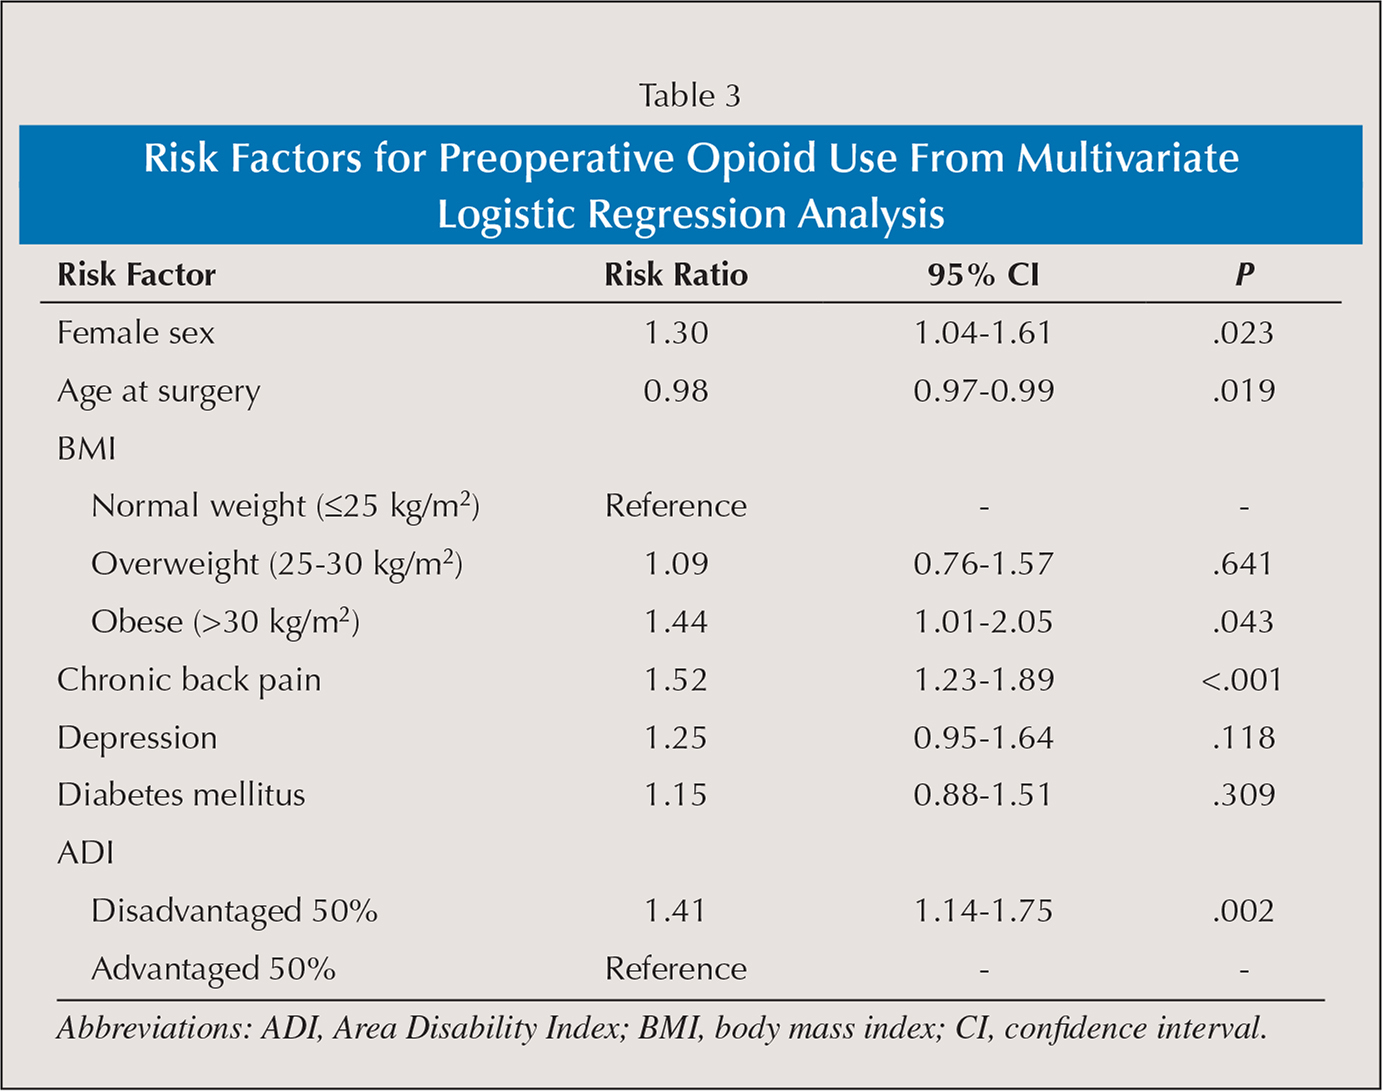 Risk Factors for Preoperative Opioid Use From Multivariate Logistic Regression Analysis